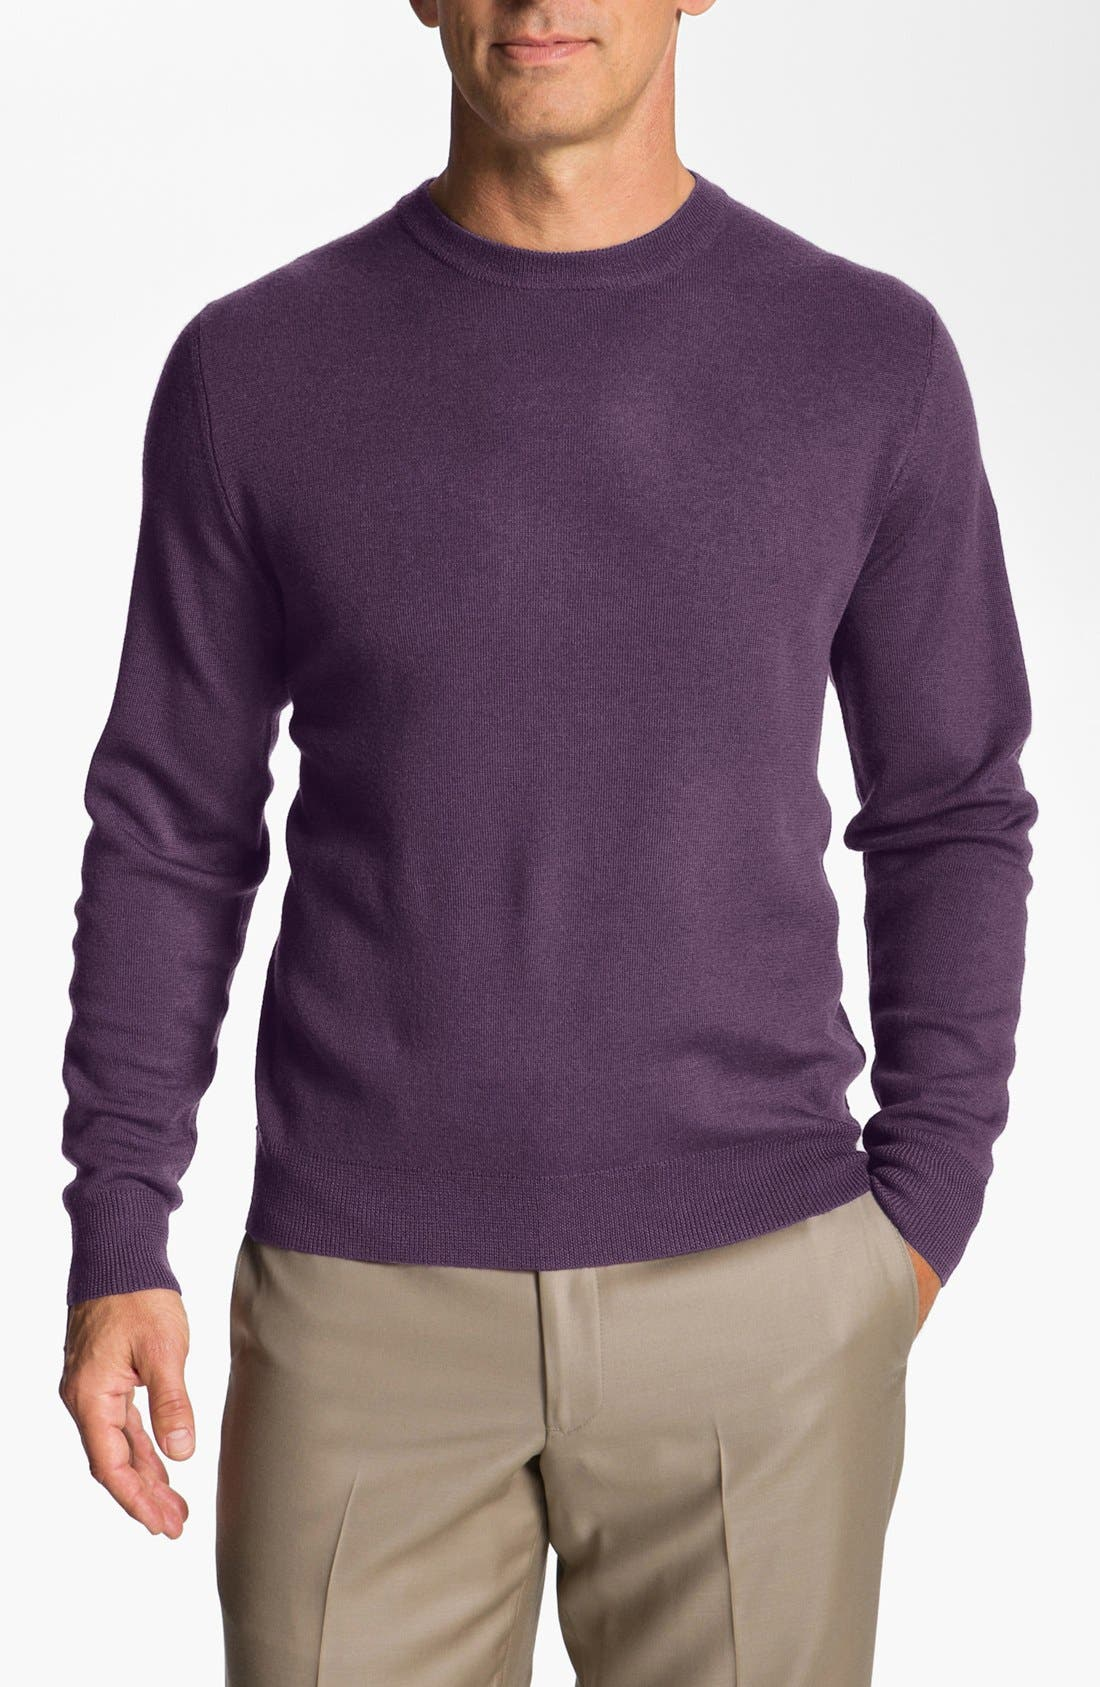 Main Image - Façonnable Merino Wool Sweater